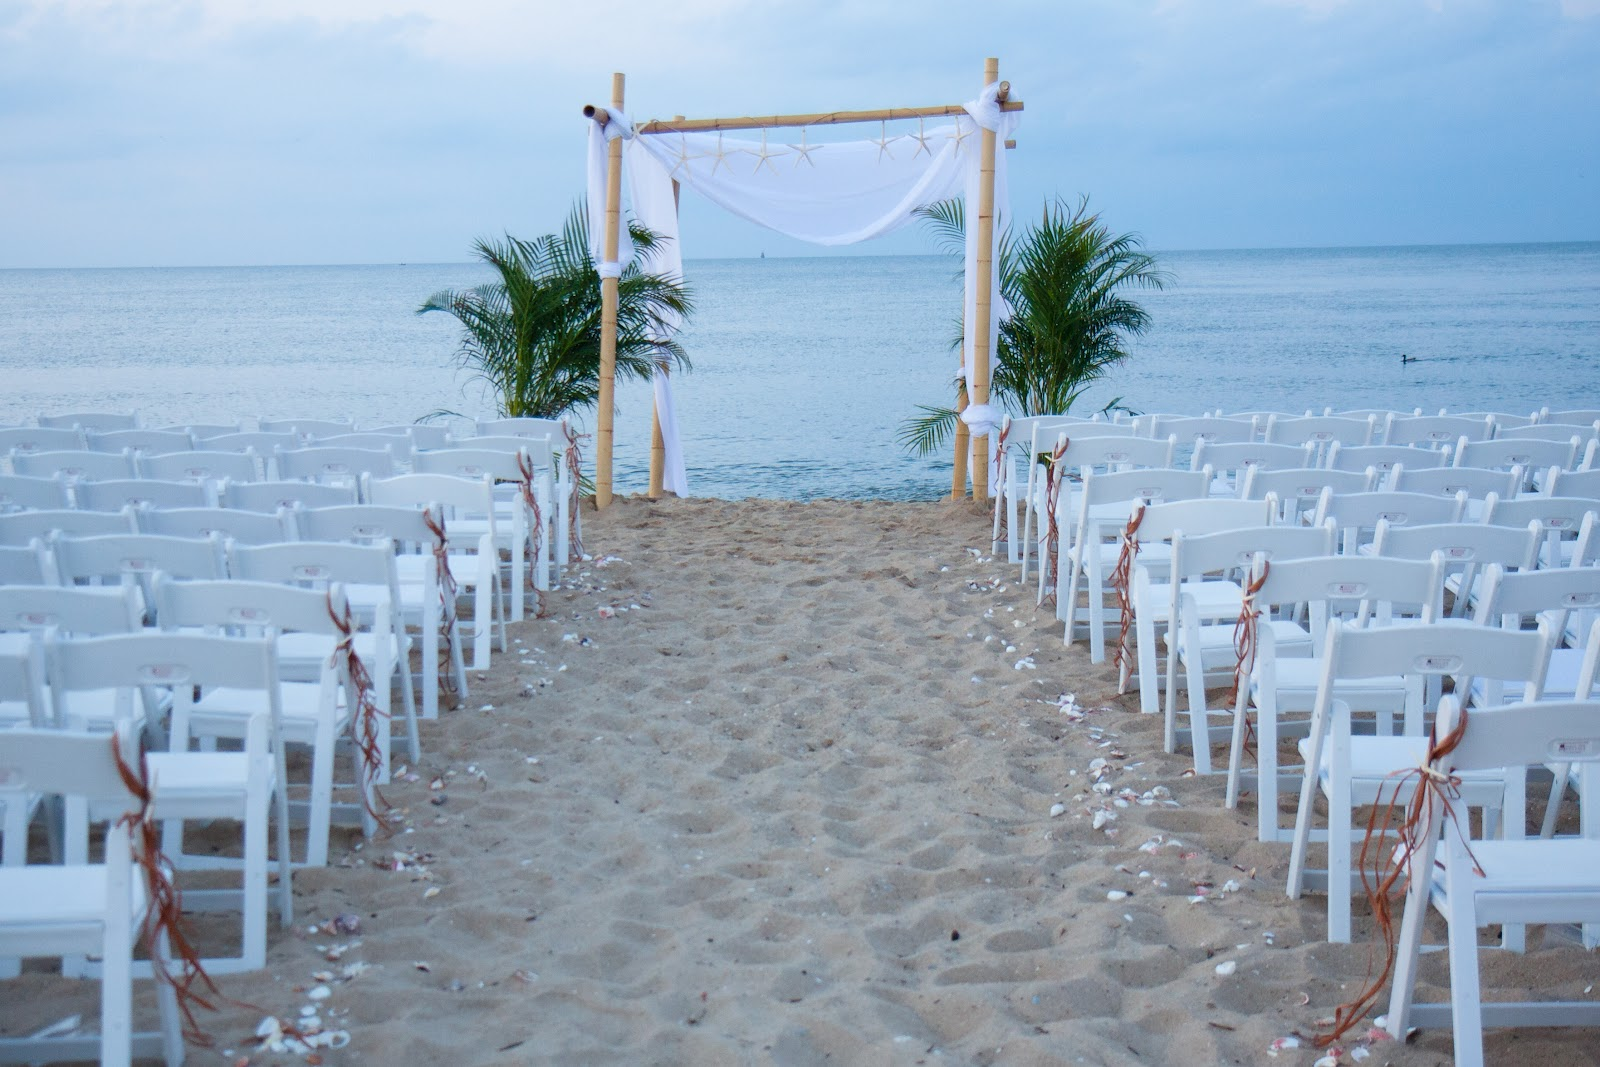 China Rental For Weddings Daytona Beach